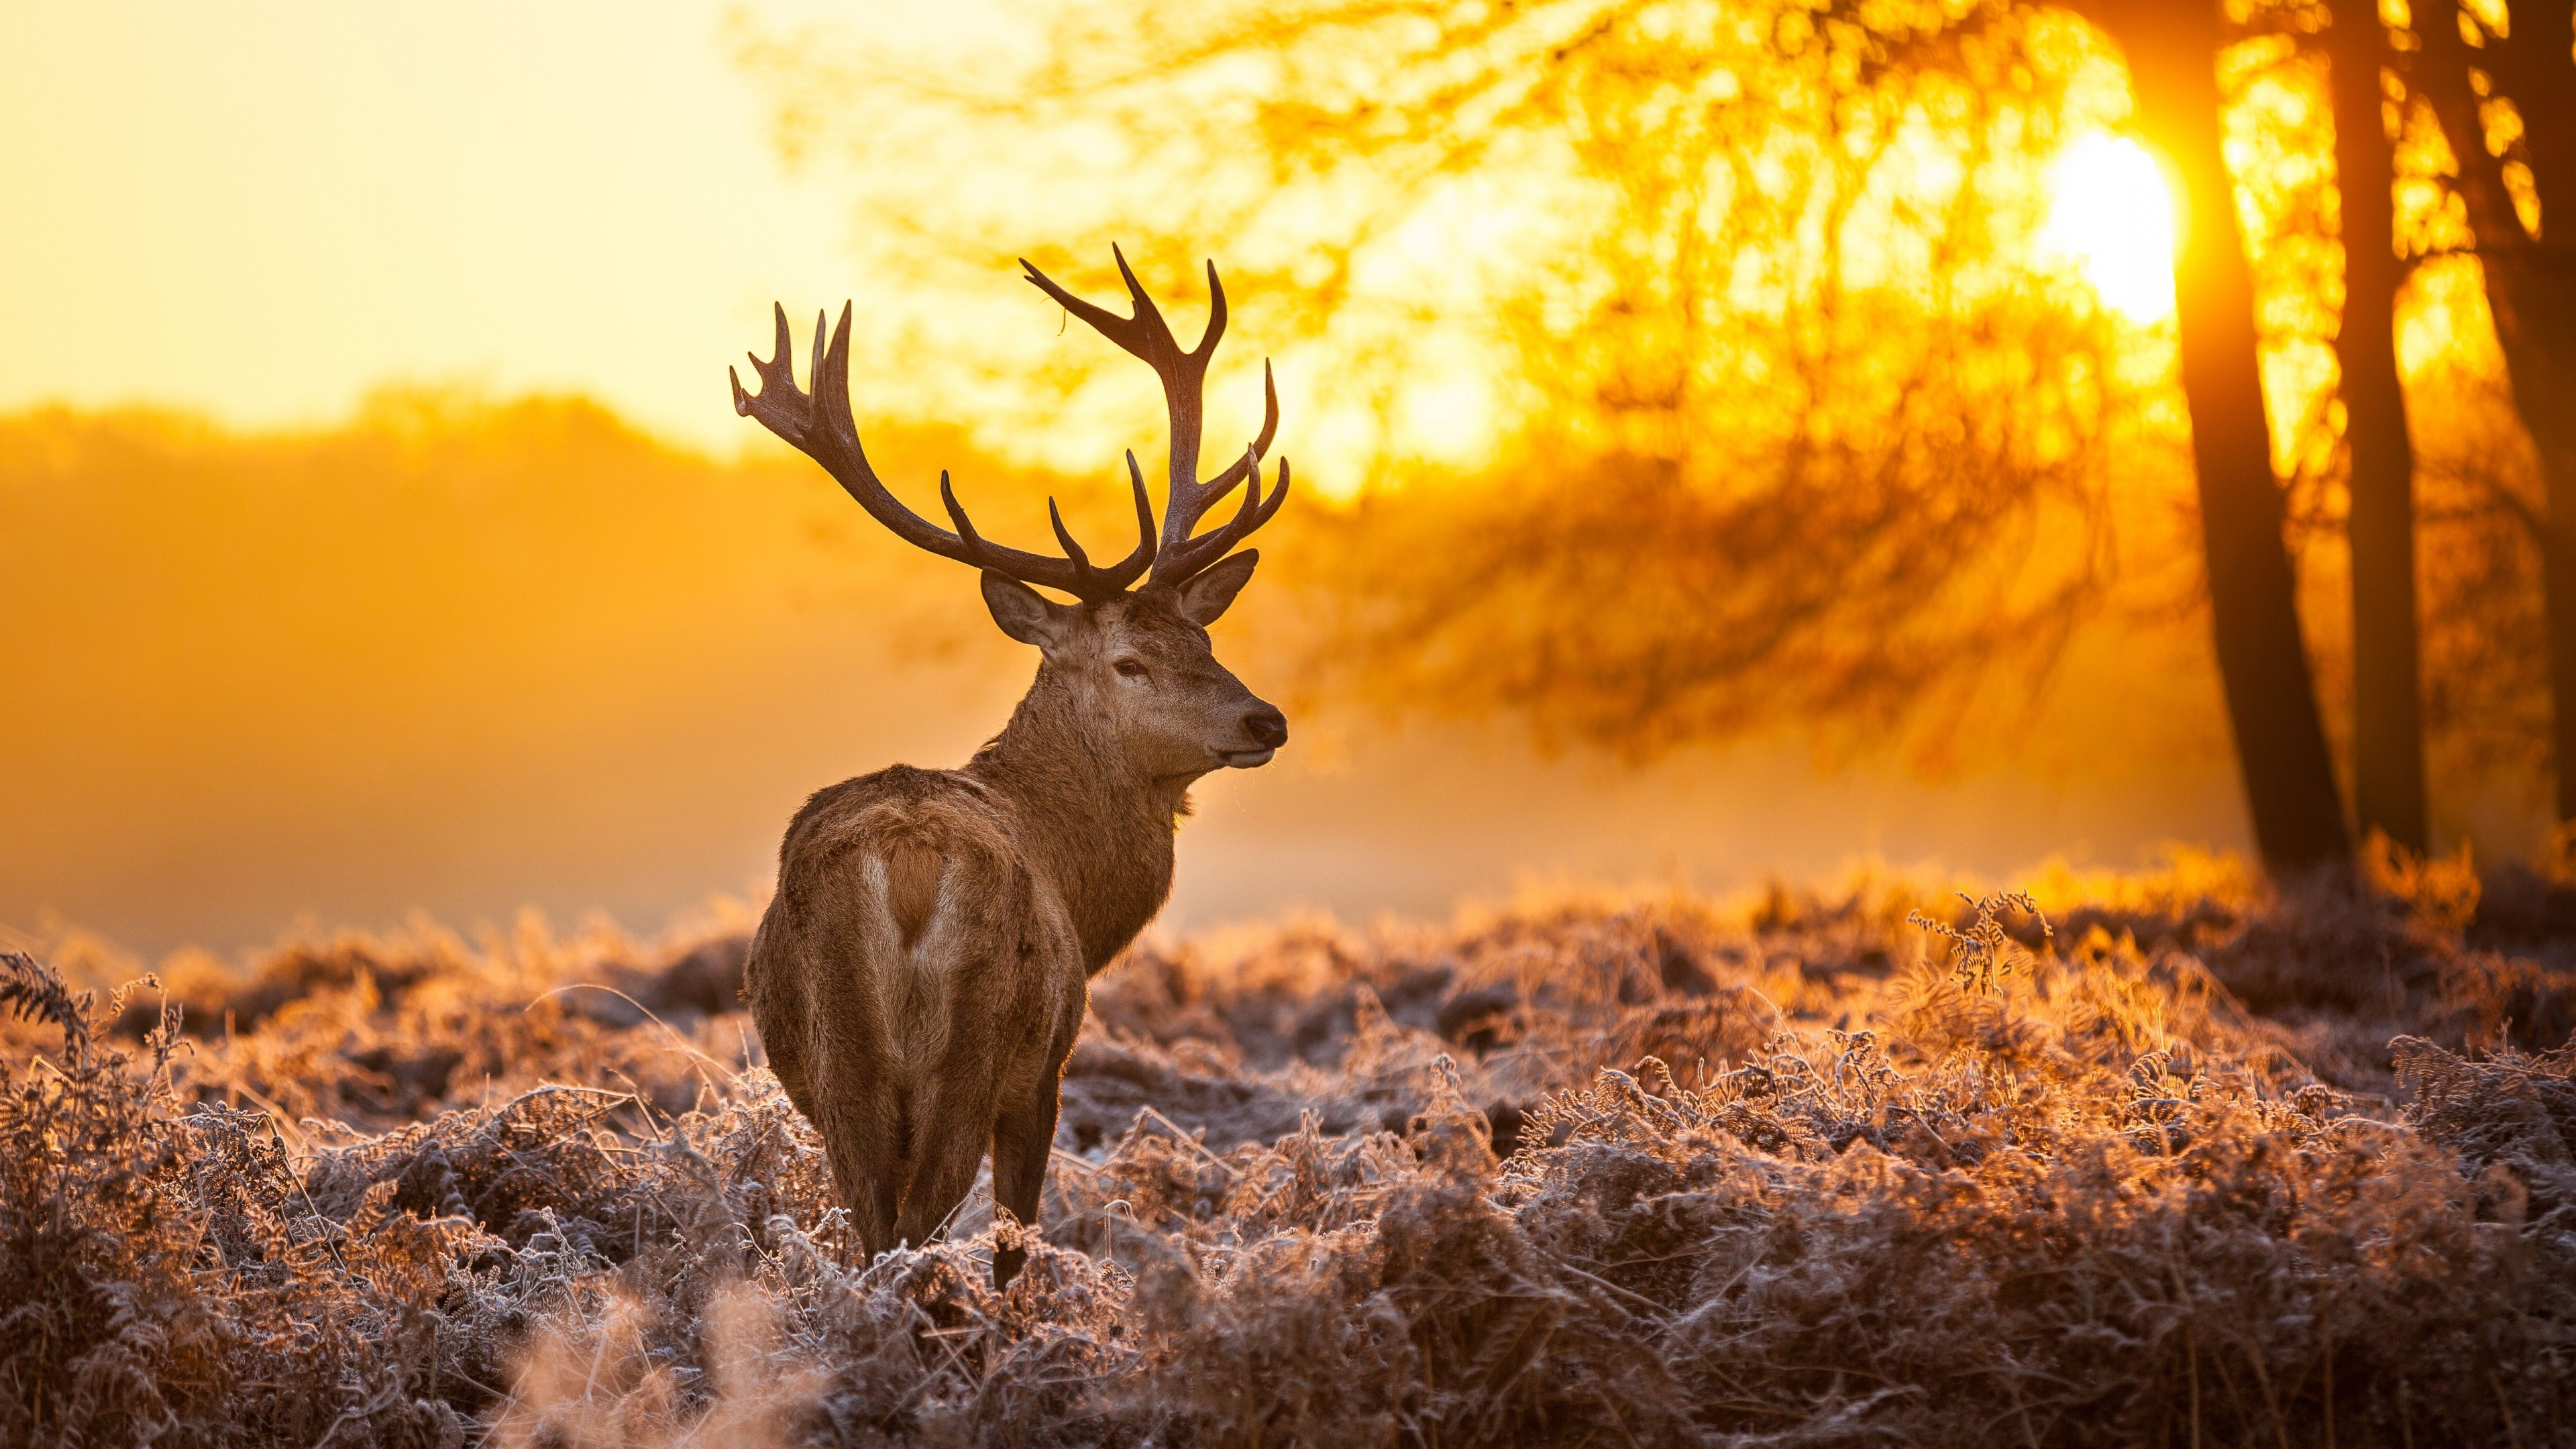 Wallpaper deer 4k hd wallpaper wild sun yellow - Hd wilderness wallpapers ...